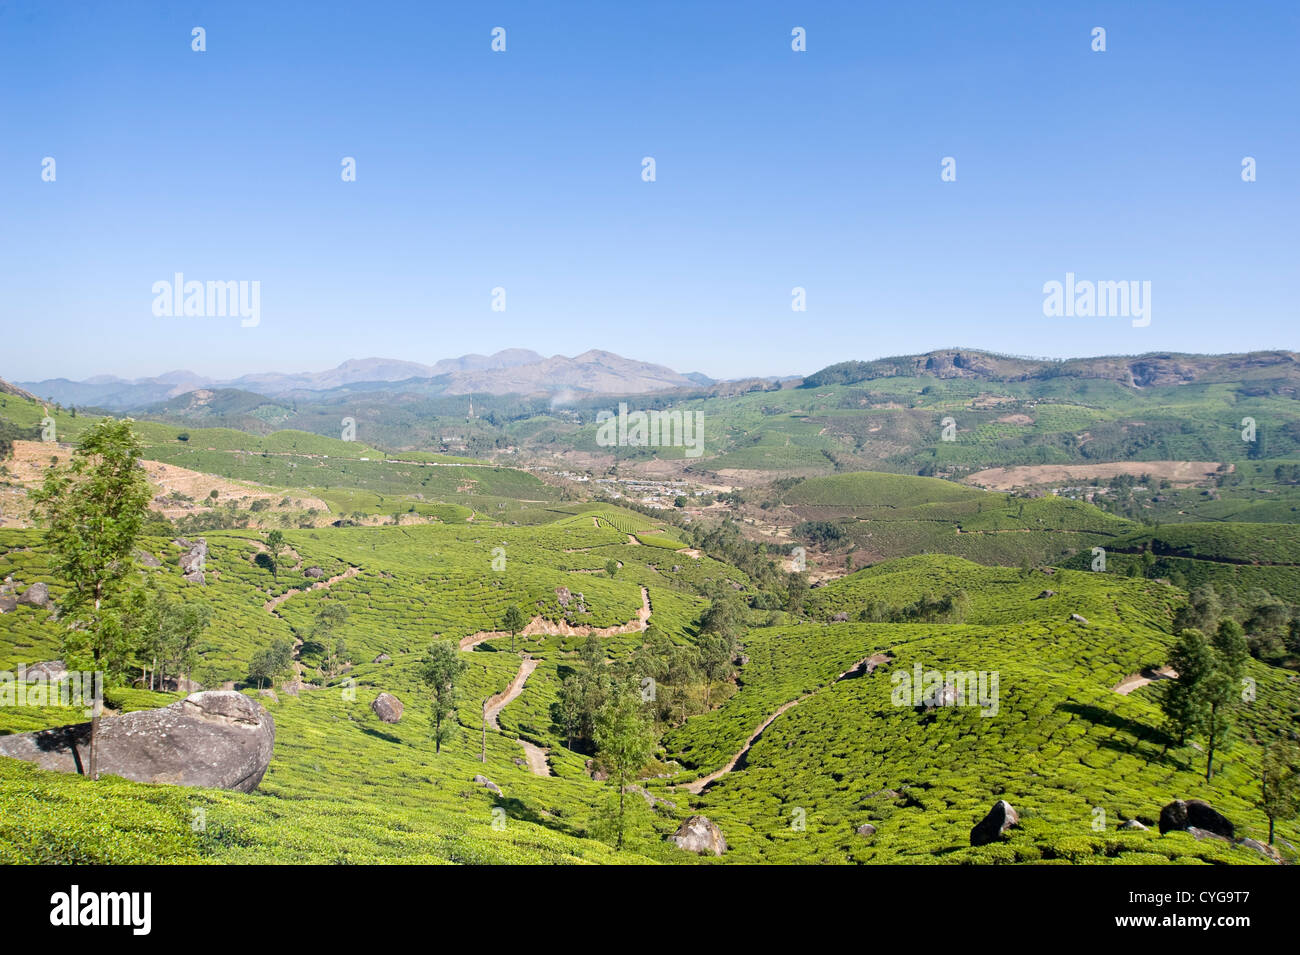 Horizontal view of the stunning tea plantation landscape in the high ranges of Idukki District, India - Stock Image